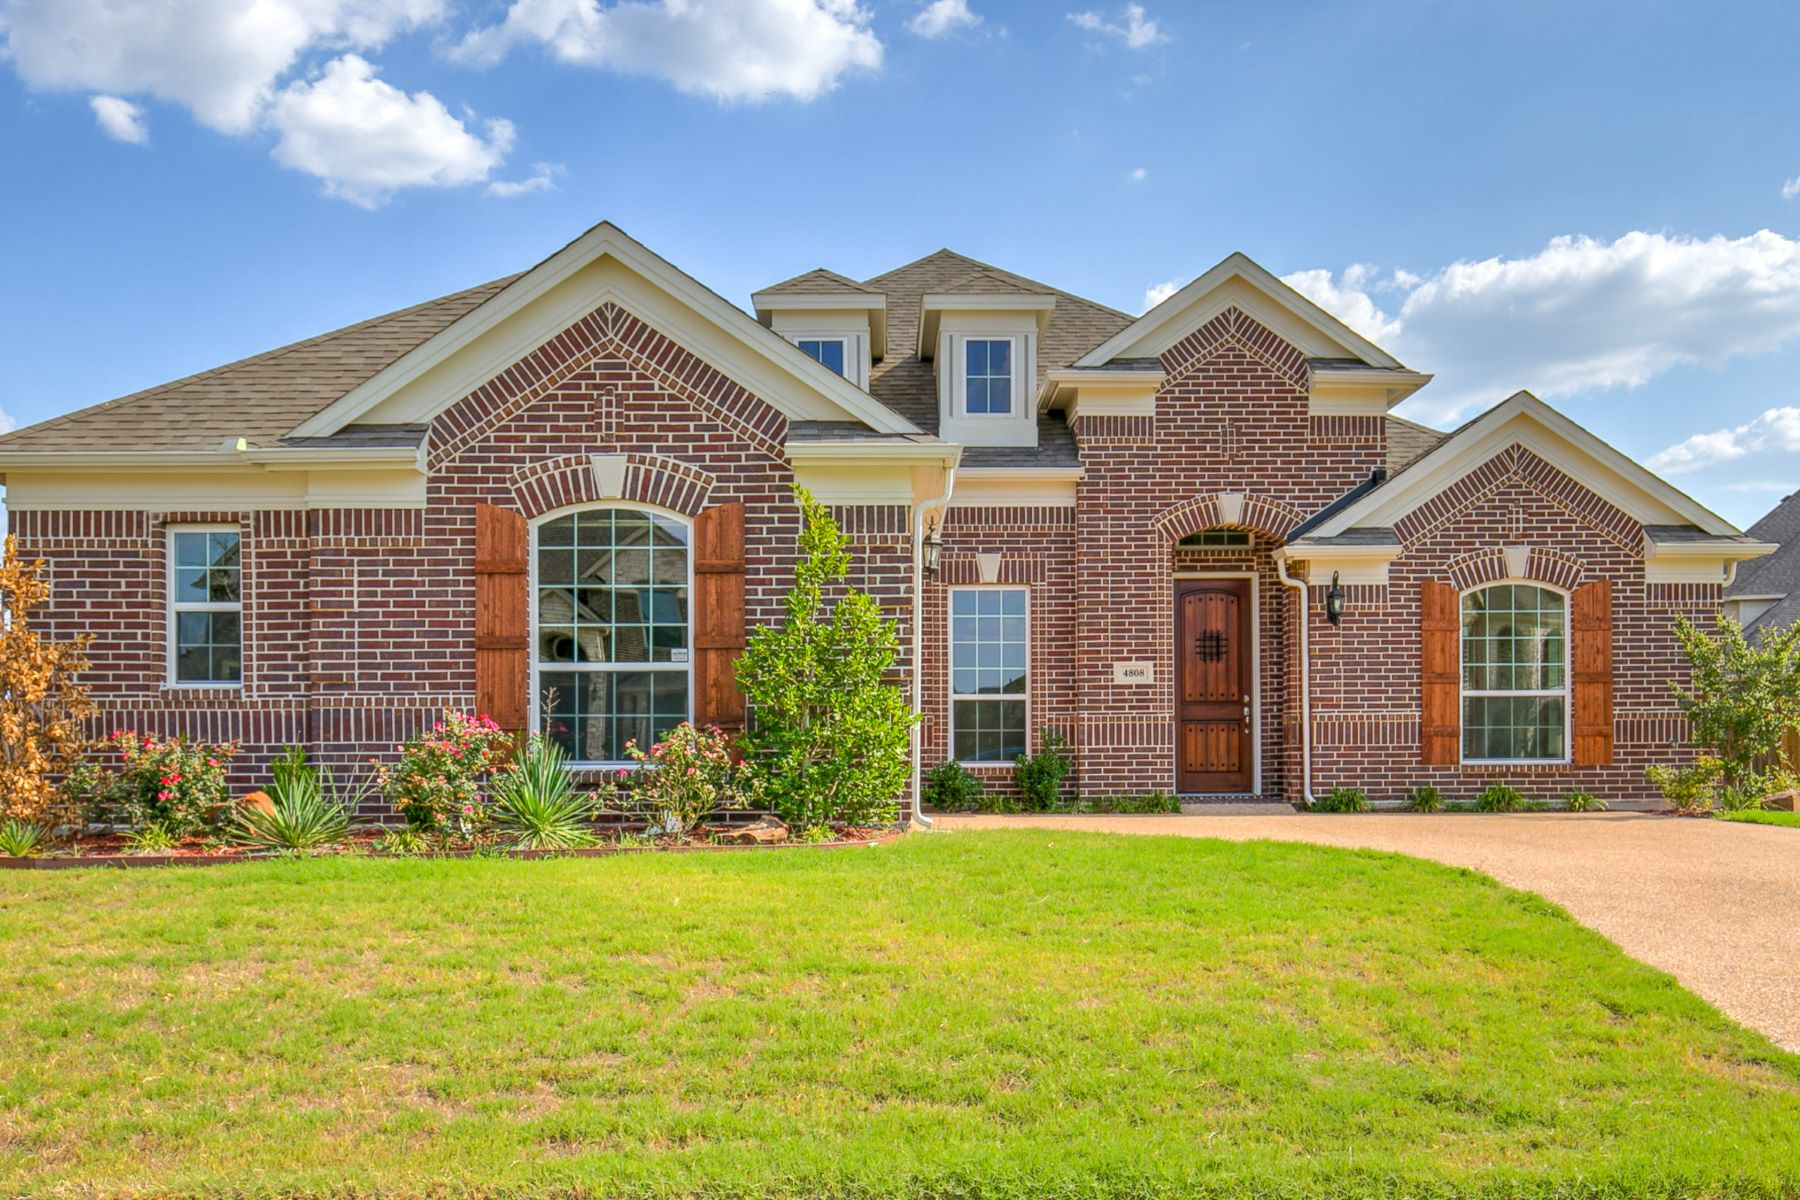 Single Family Homes for Sale at 4808 Comstock Way Mansfield, Texas 76063 United States